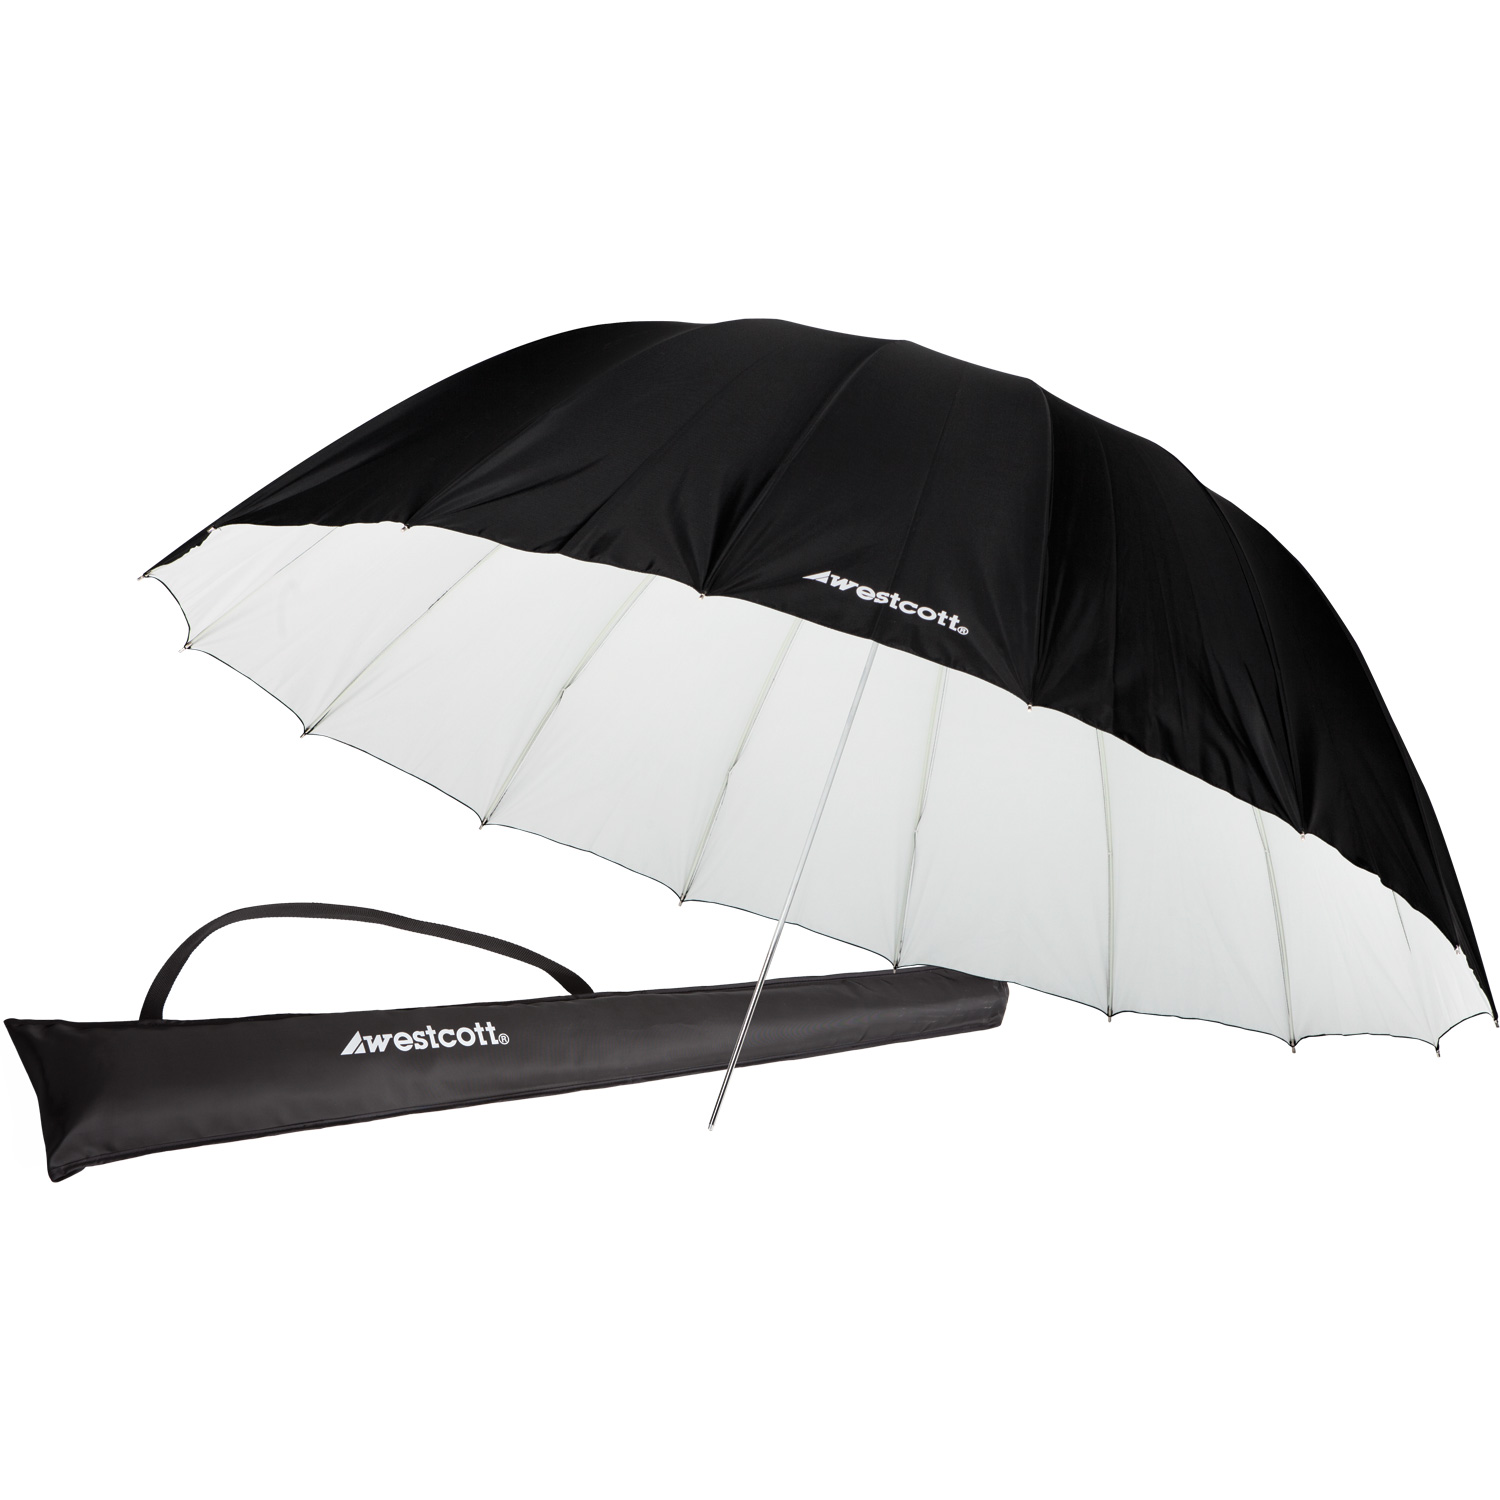 7' White/Black Umbrella